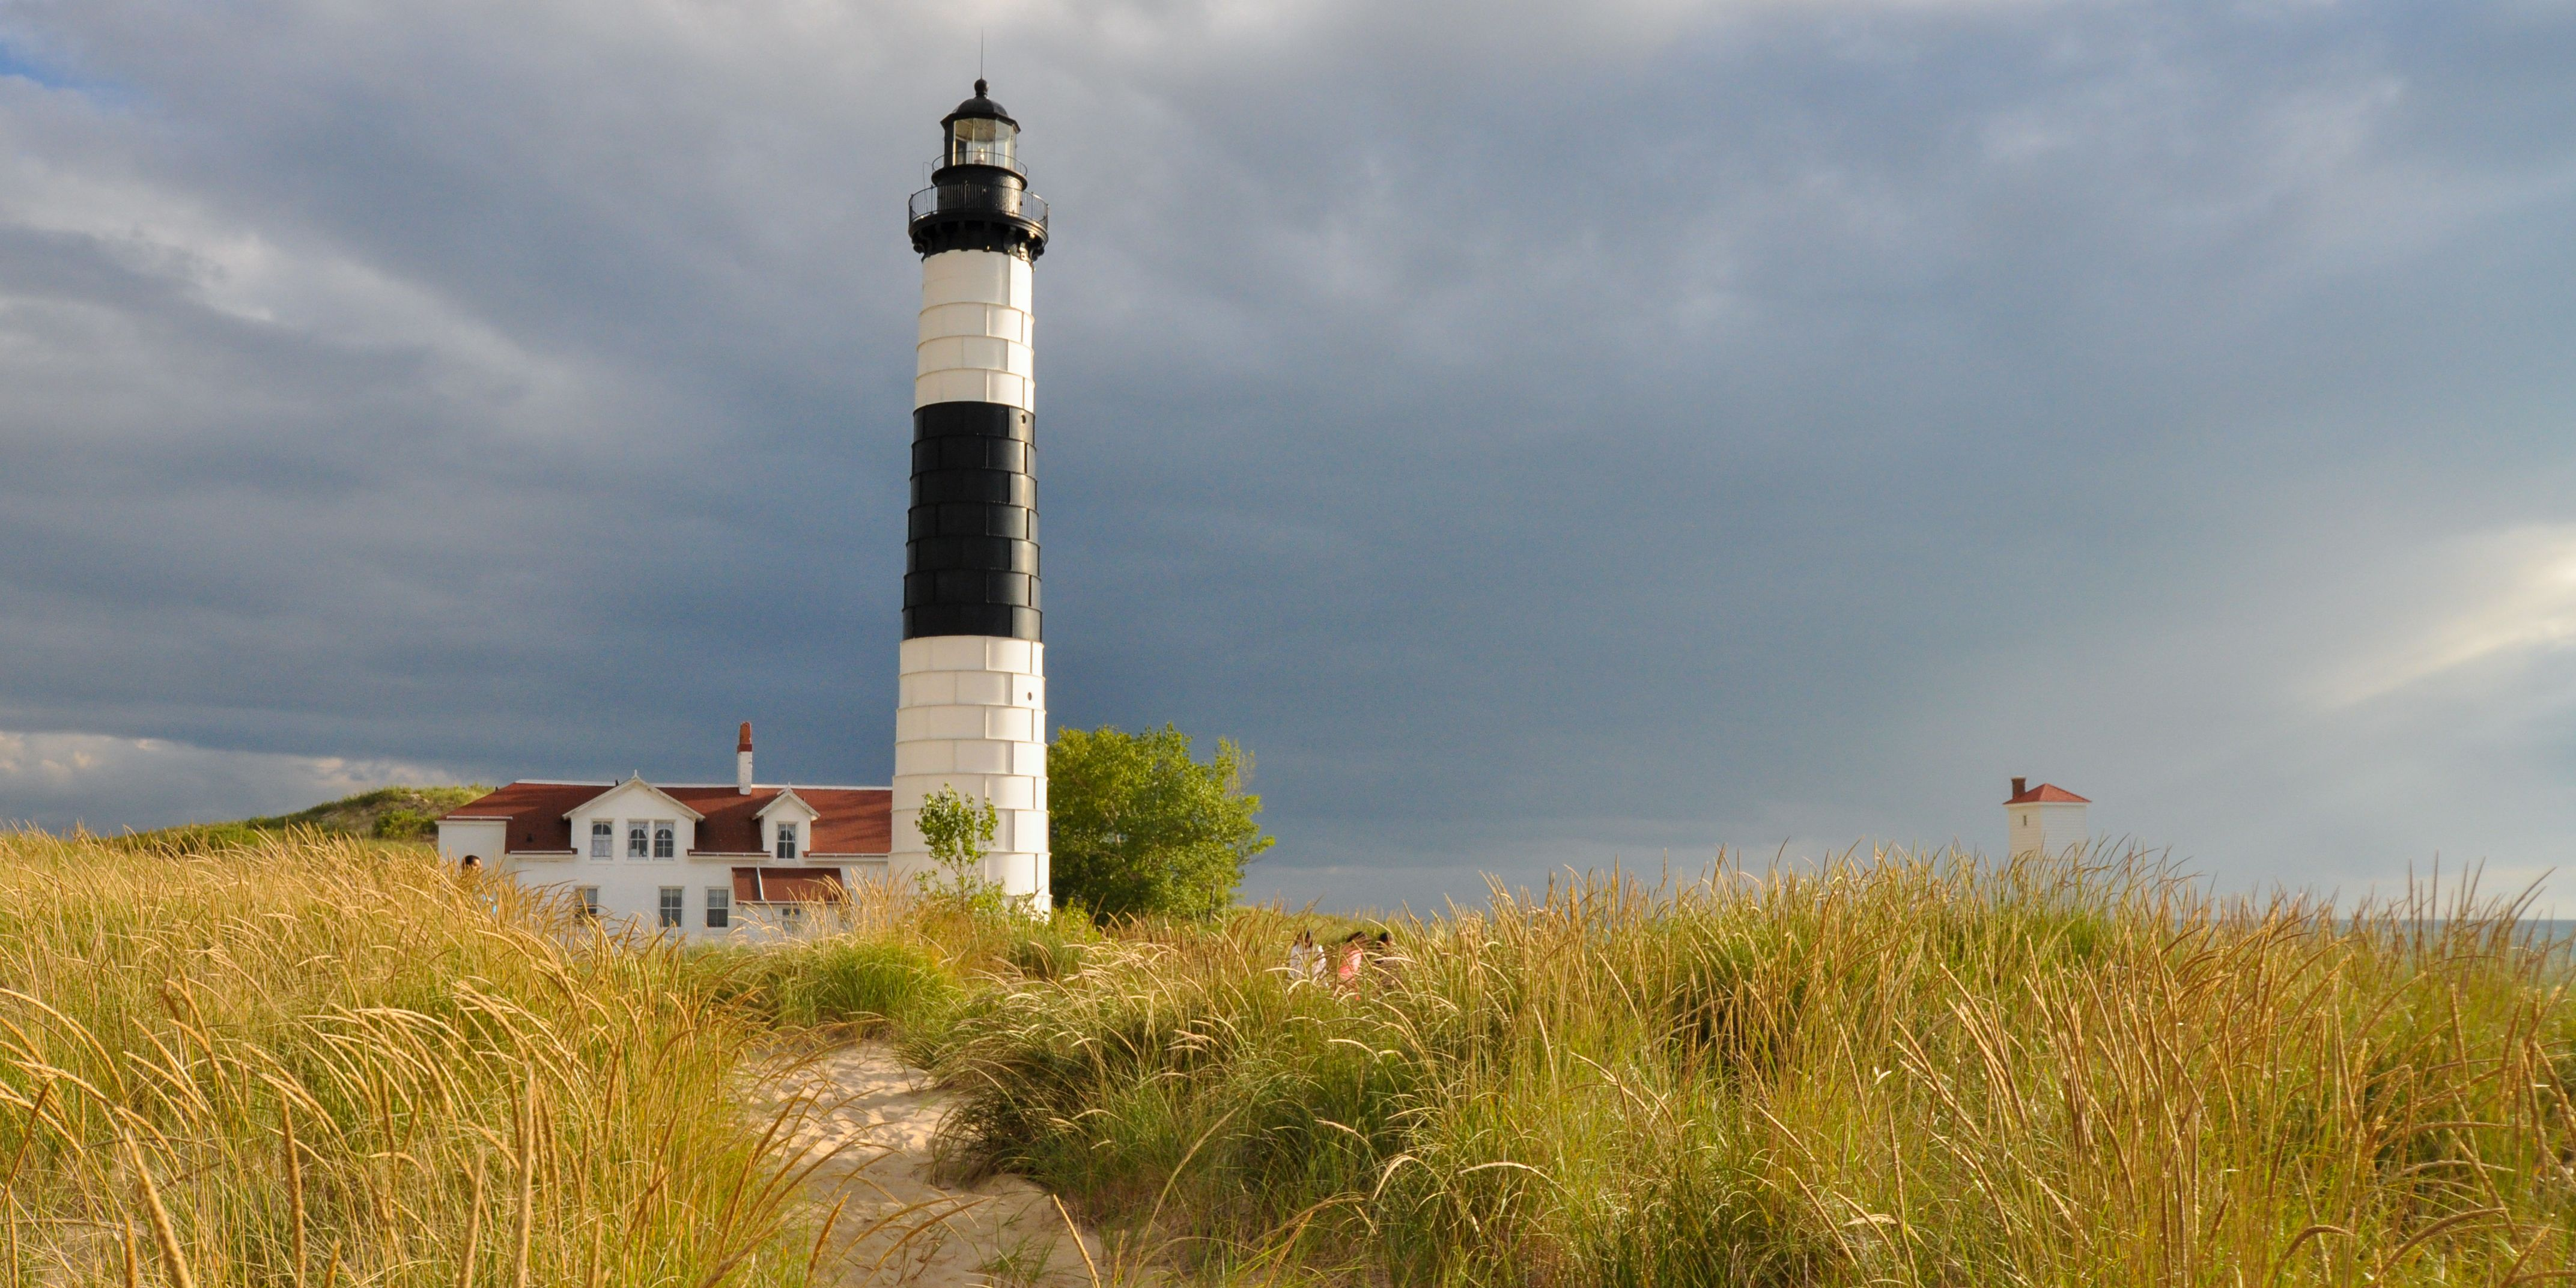 "<p>Michigan is home to more lighthouses than any other U.S. state. <a target=""_blank"" href=""http://www.splka.org/"">The Sable Points Lighthouse Keepers Association</a><em data-redactor-tag=""em""> </em>is raising funds to repair Ludington State Park's Big Sable Point Lighthouse—the last of the Great Lakes lighthouses to become electrified.</p>"